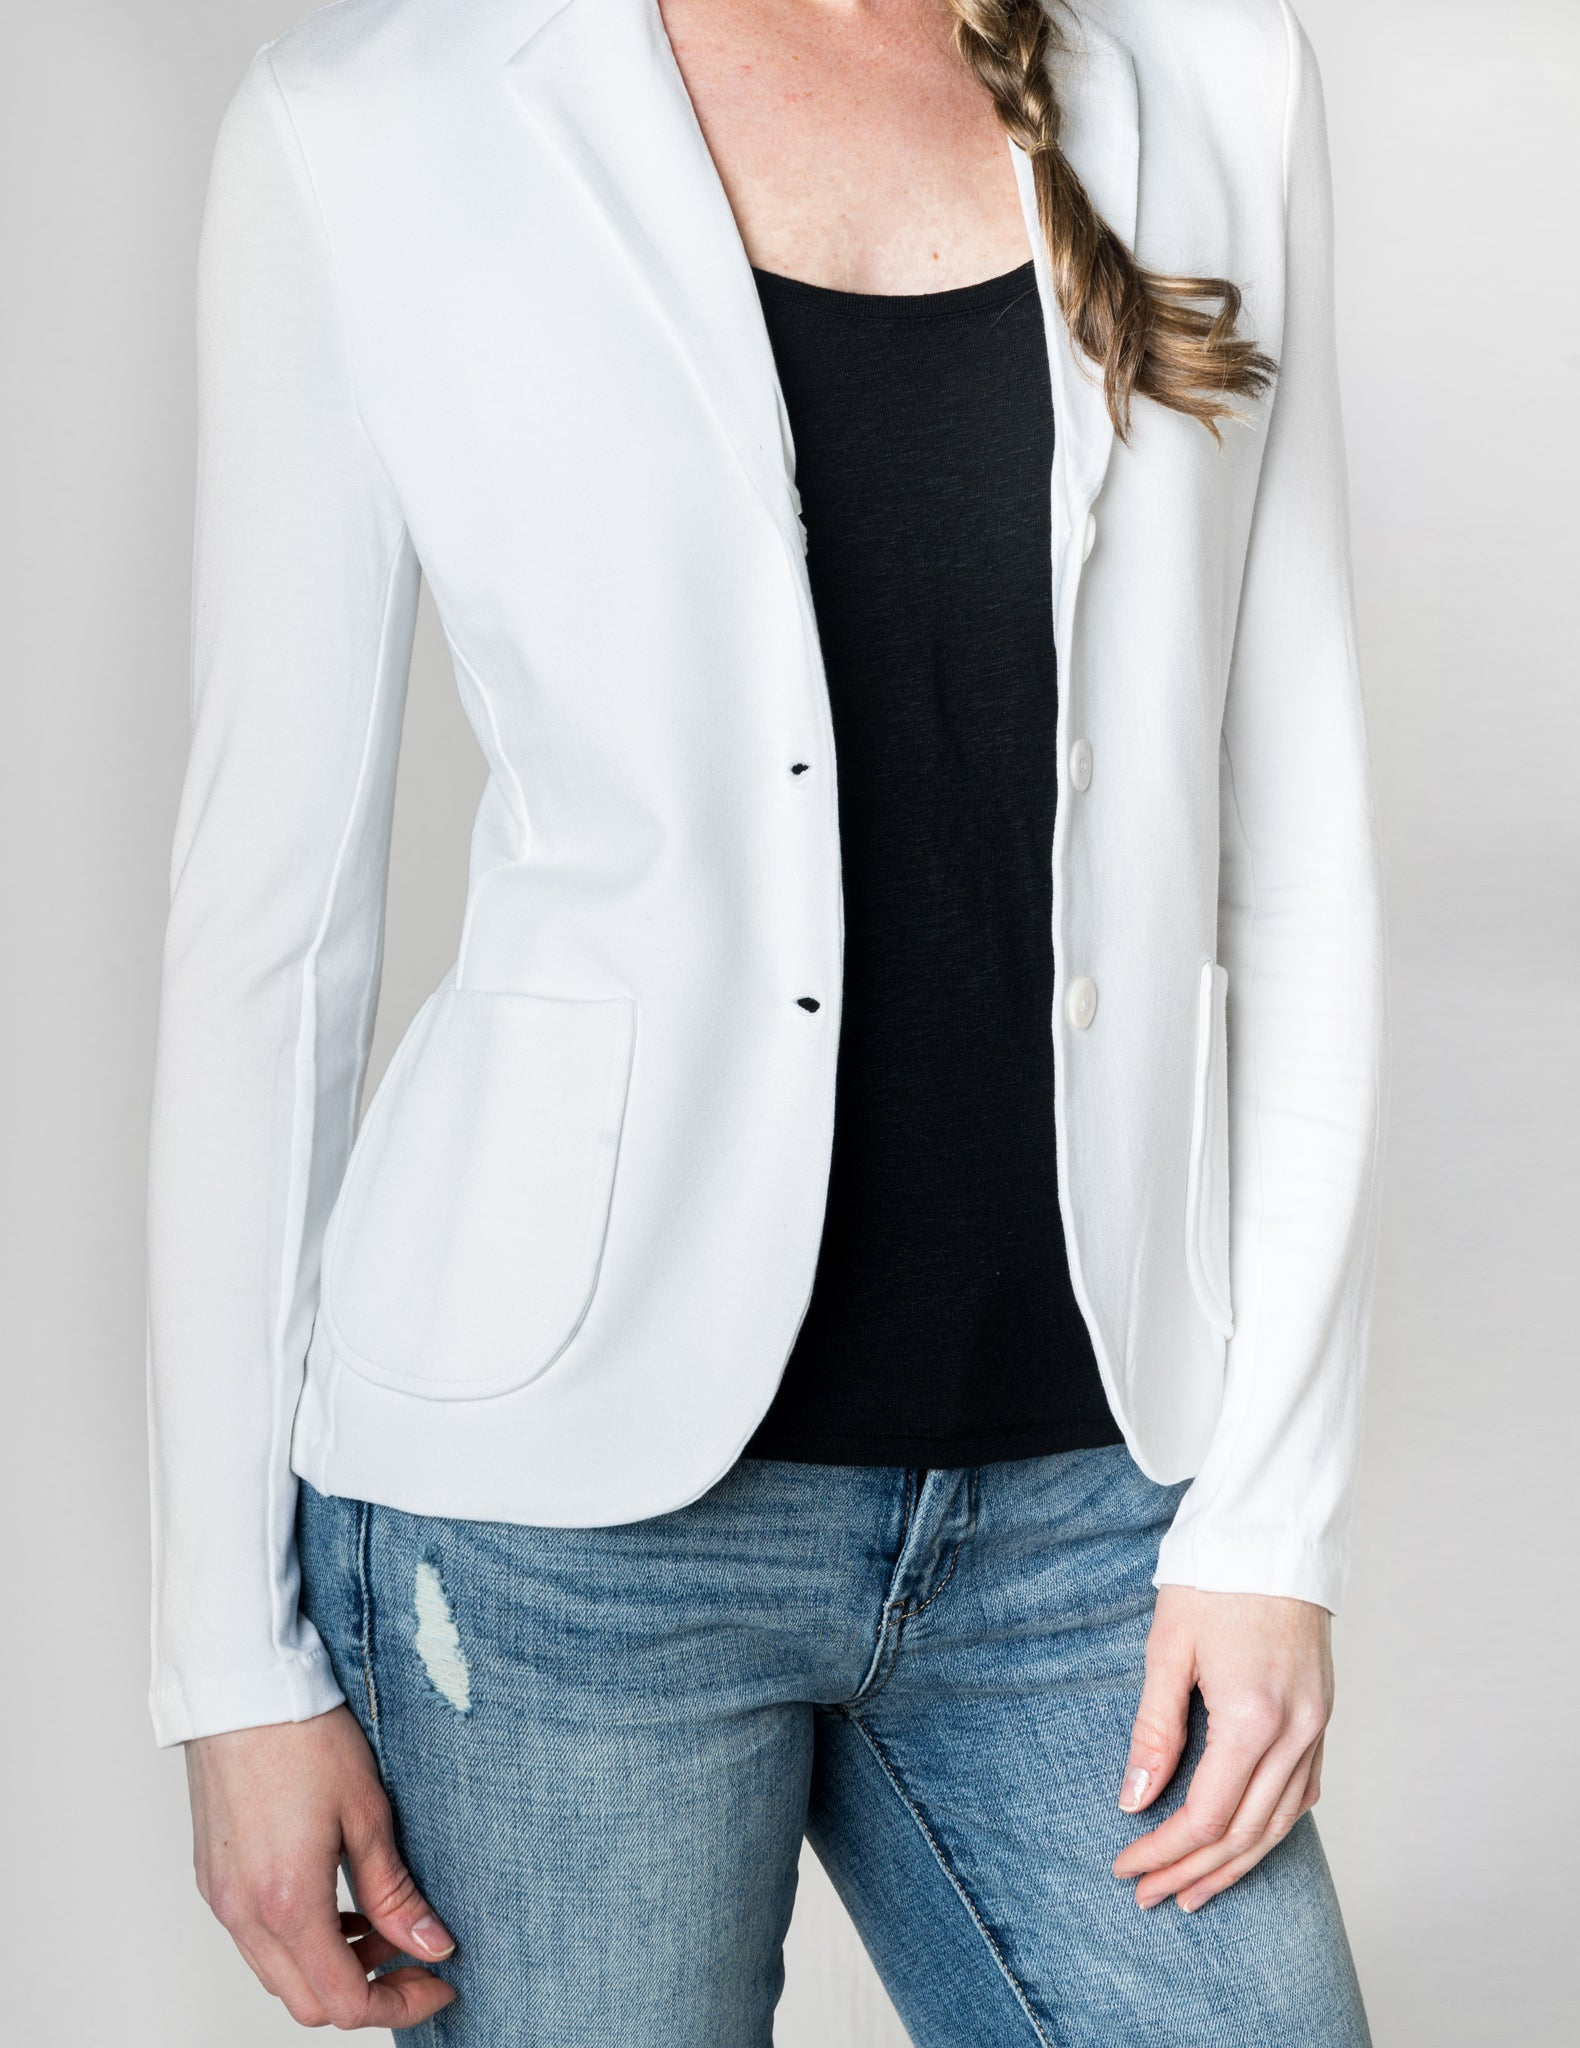 Majestic Basic Blazer in White